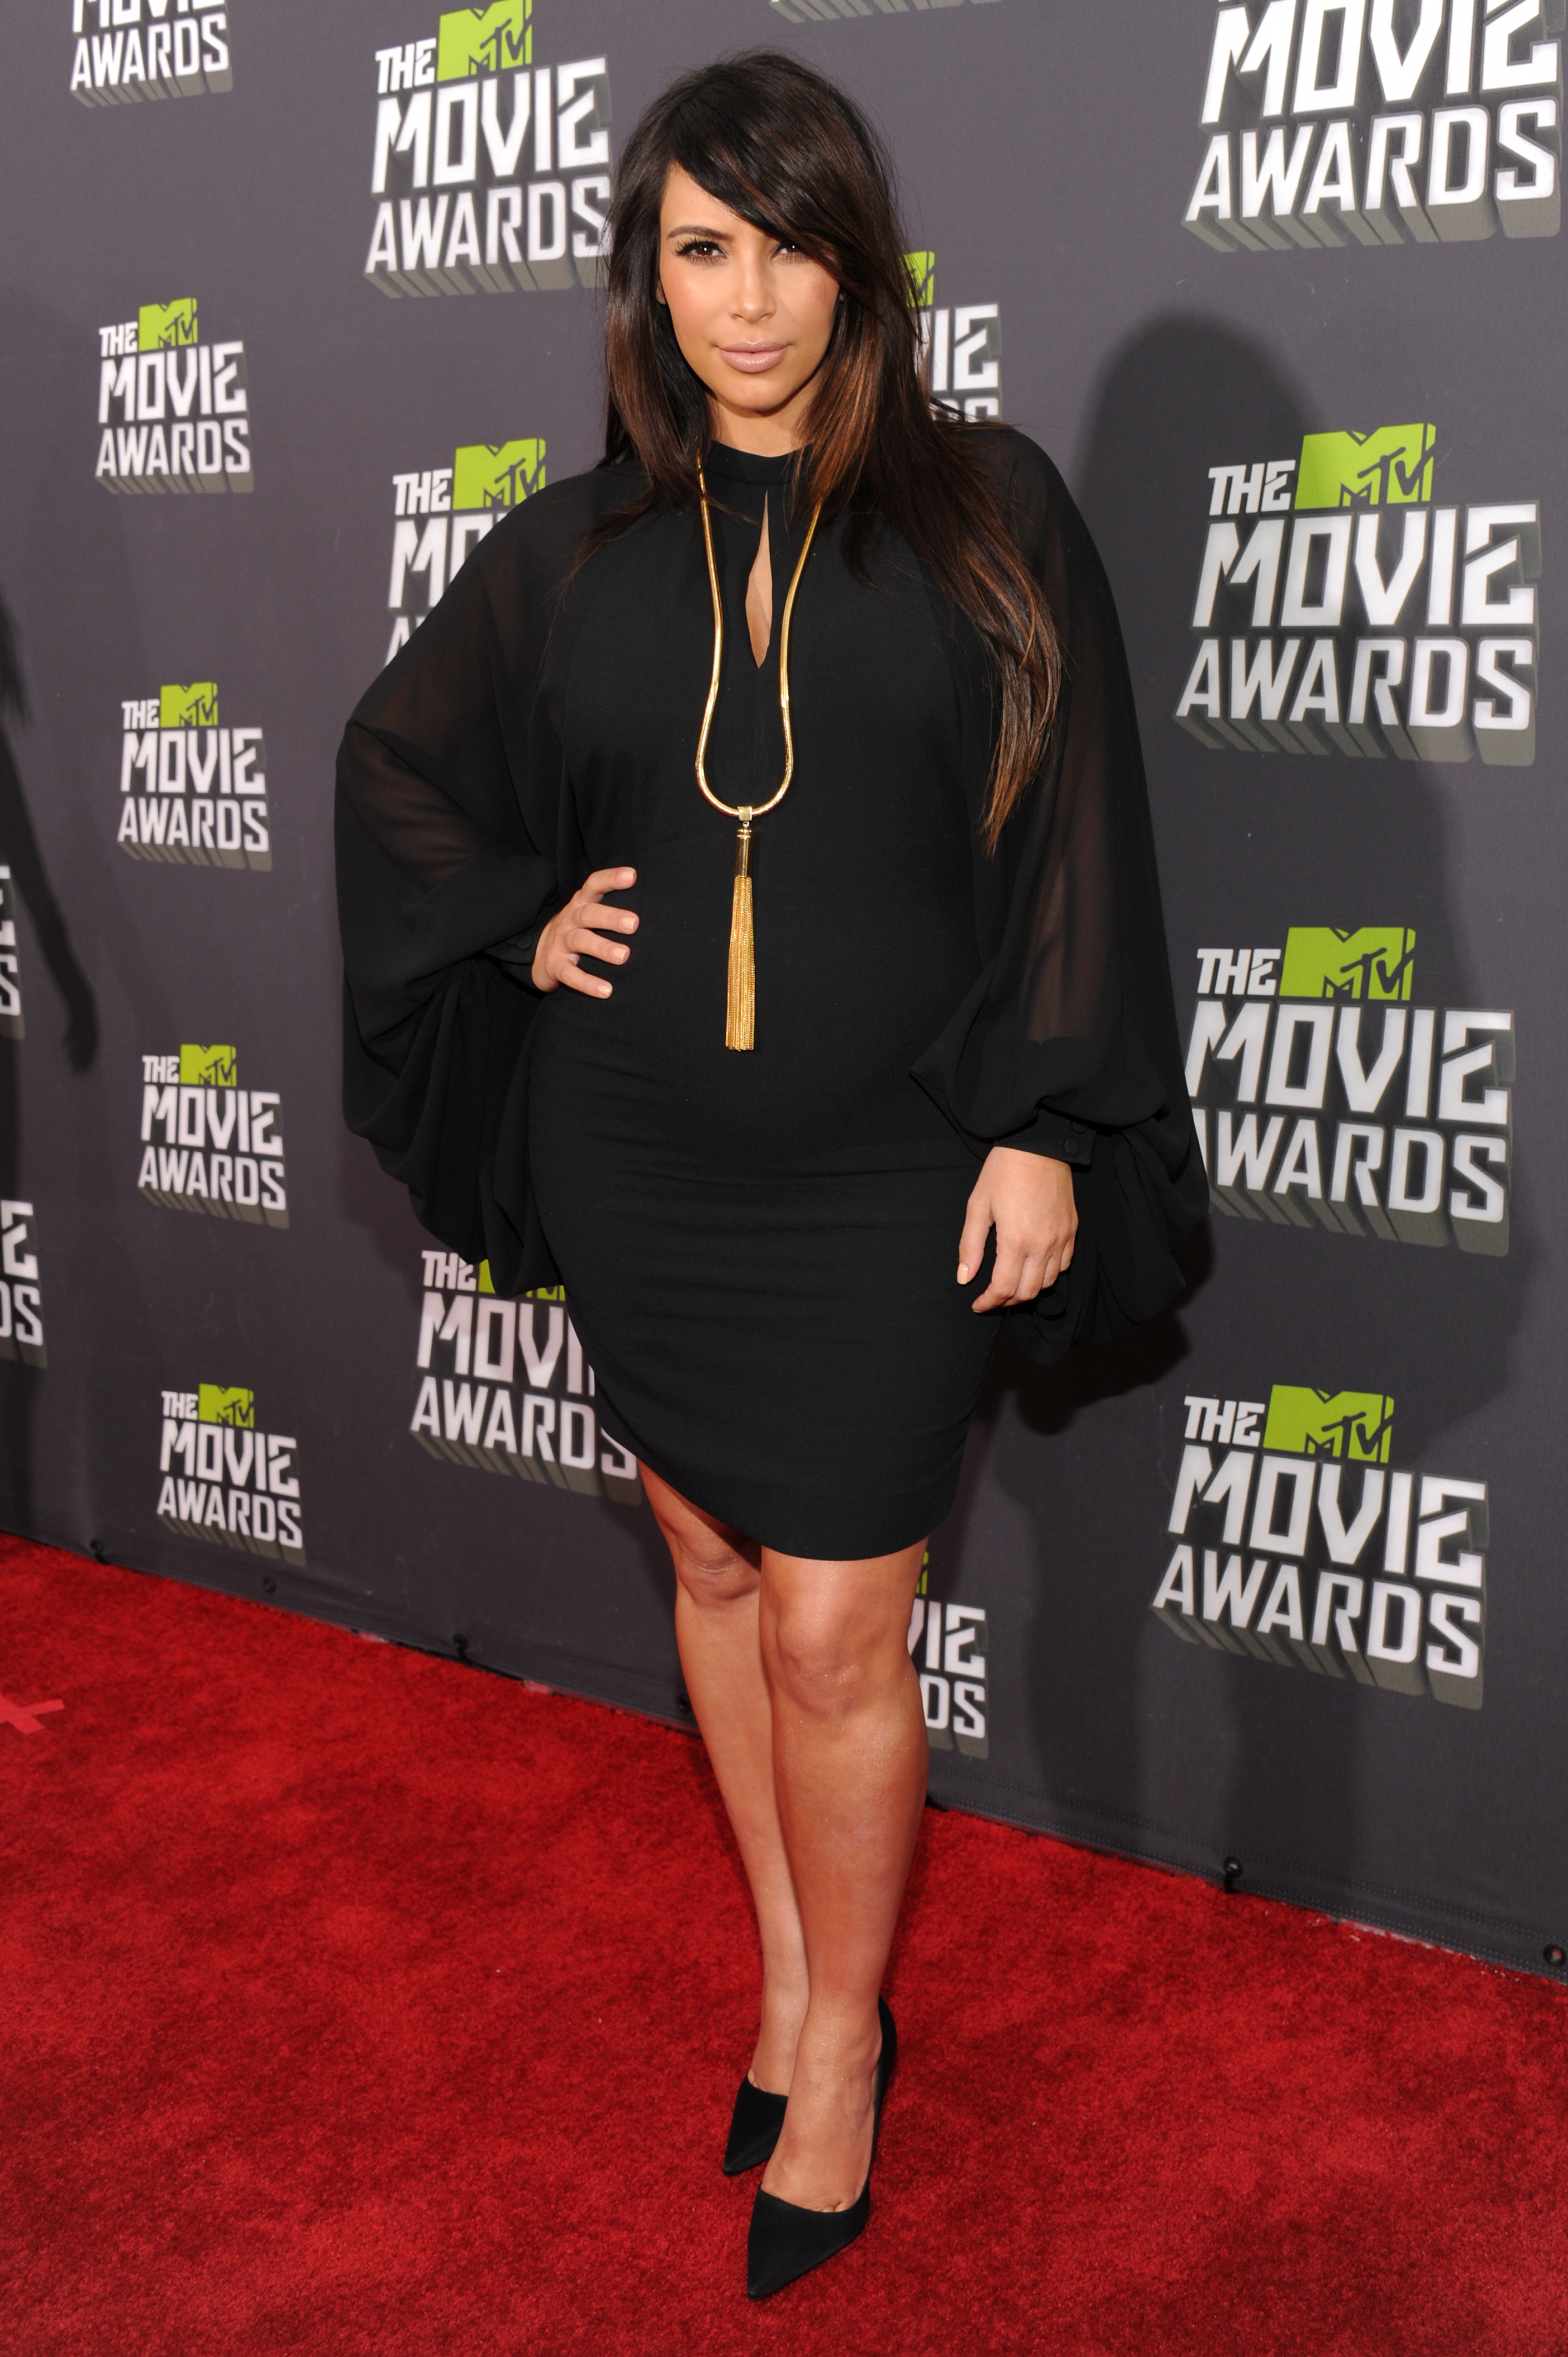 Kim Kardashian Black dress 2013 MTV Movie Awards